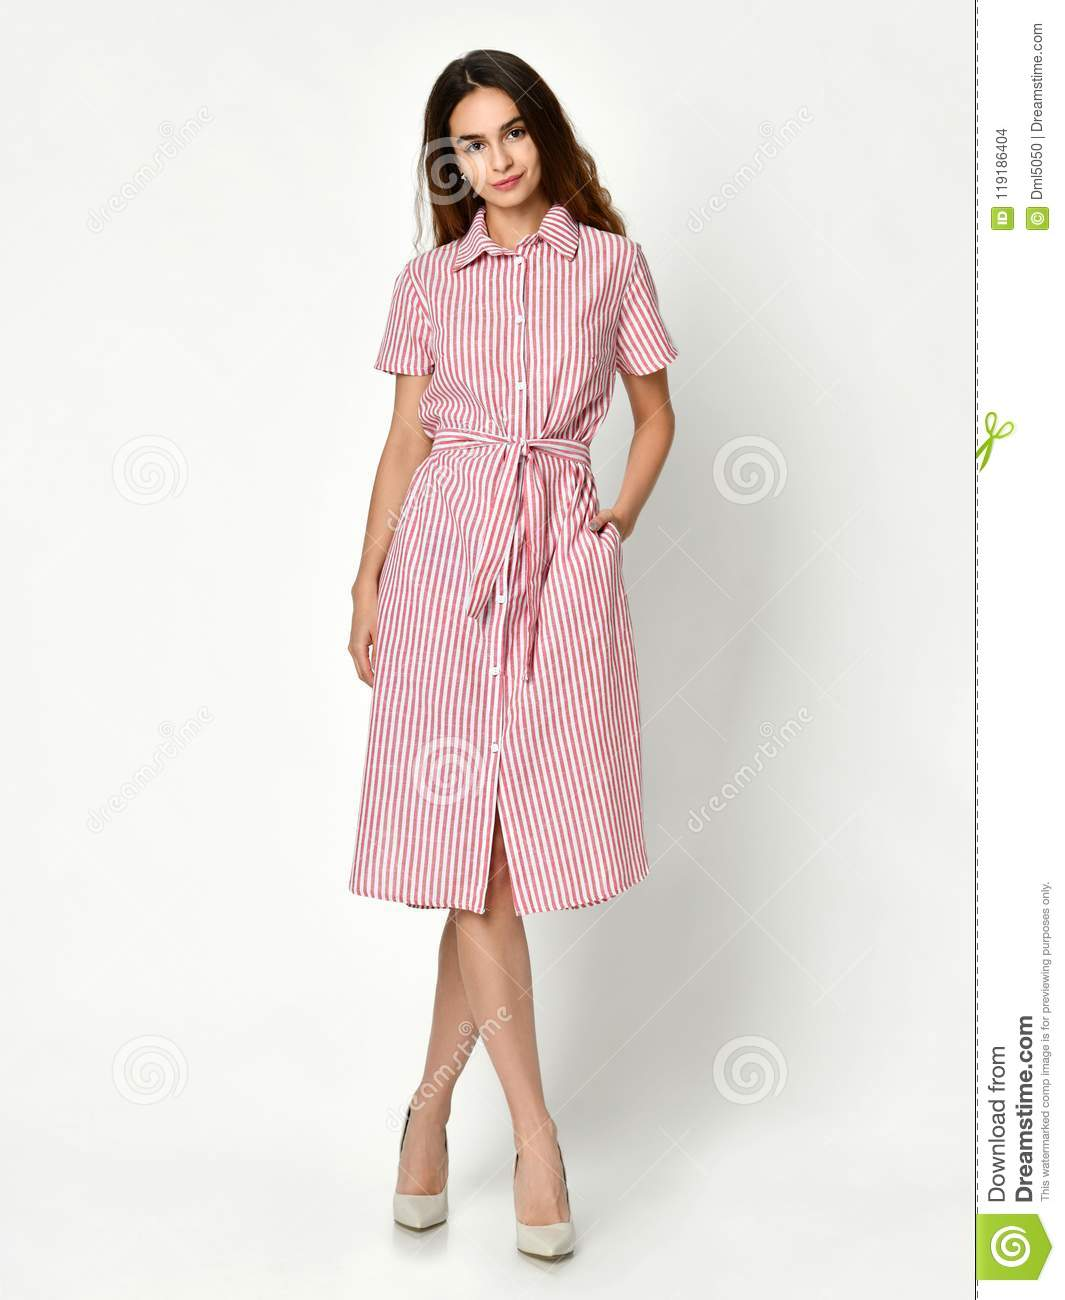 3170f8ed5 Young Beautiful Woman Posing In New Pink Stripes Casual Summer Dress ...